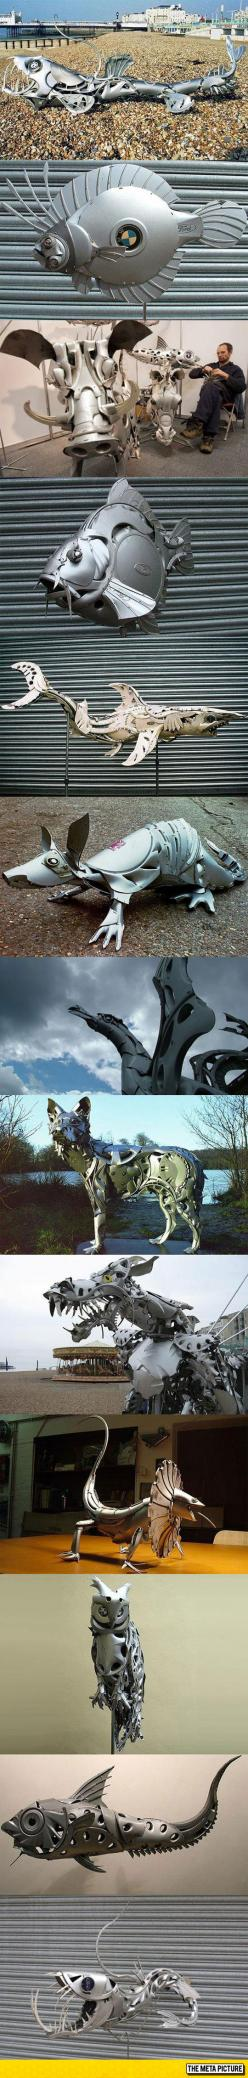 Awesome Hubcap Sculptures